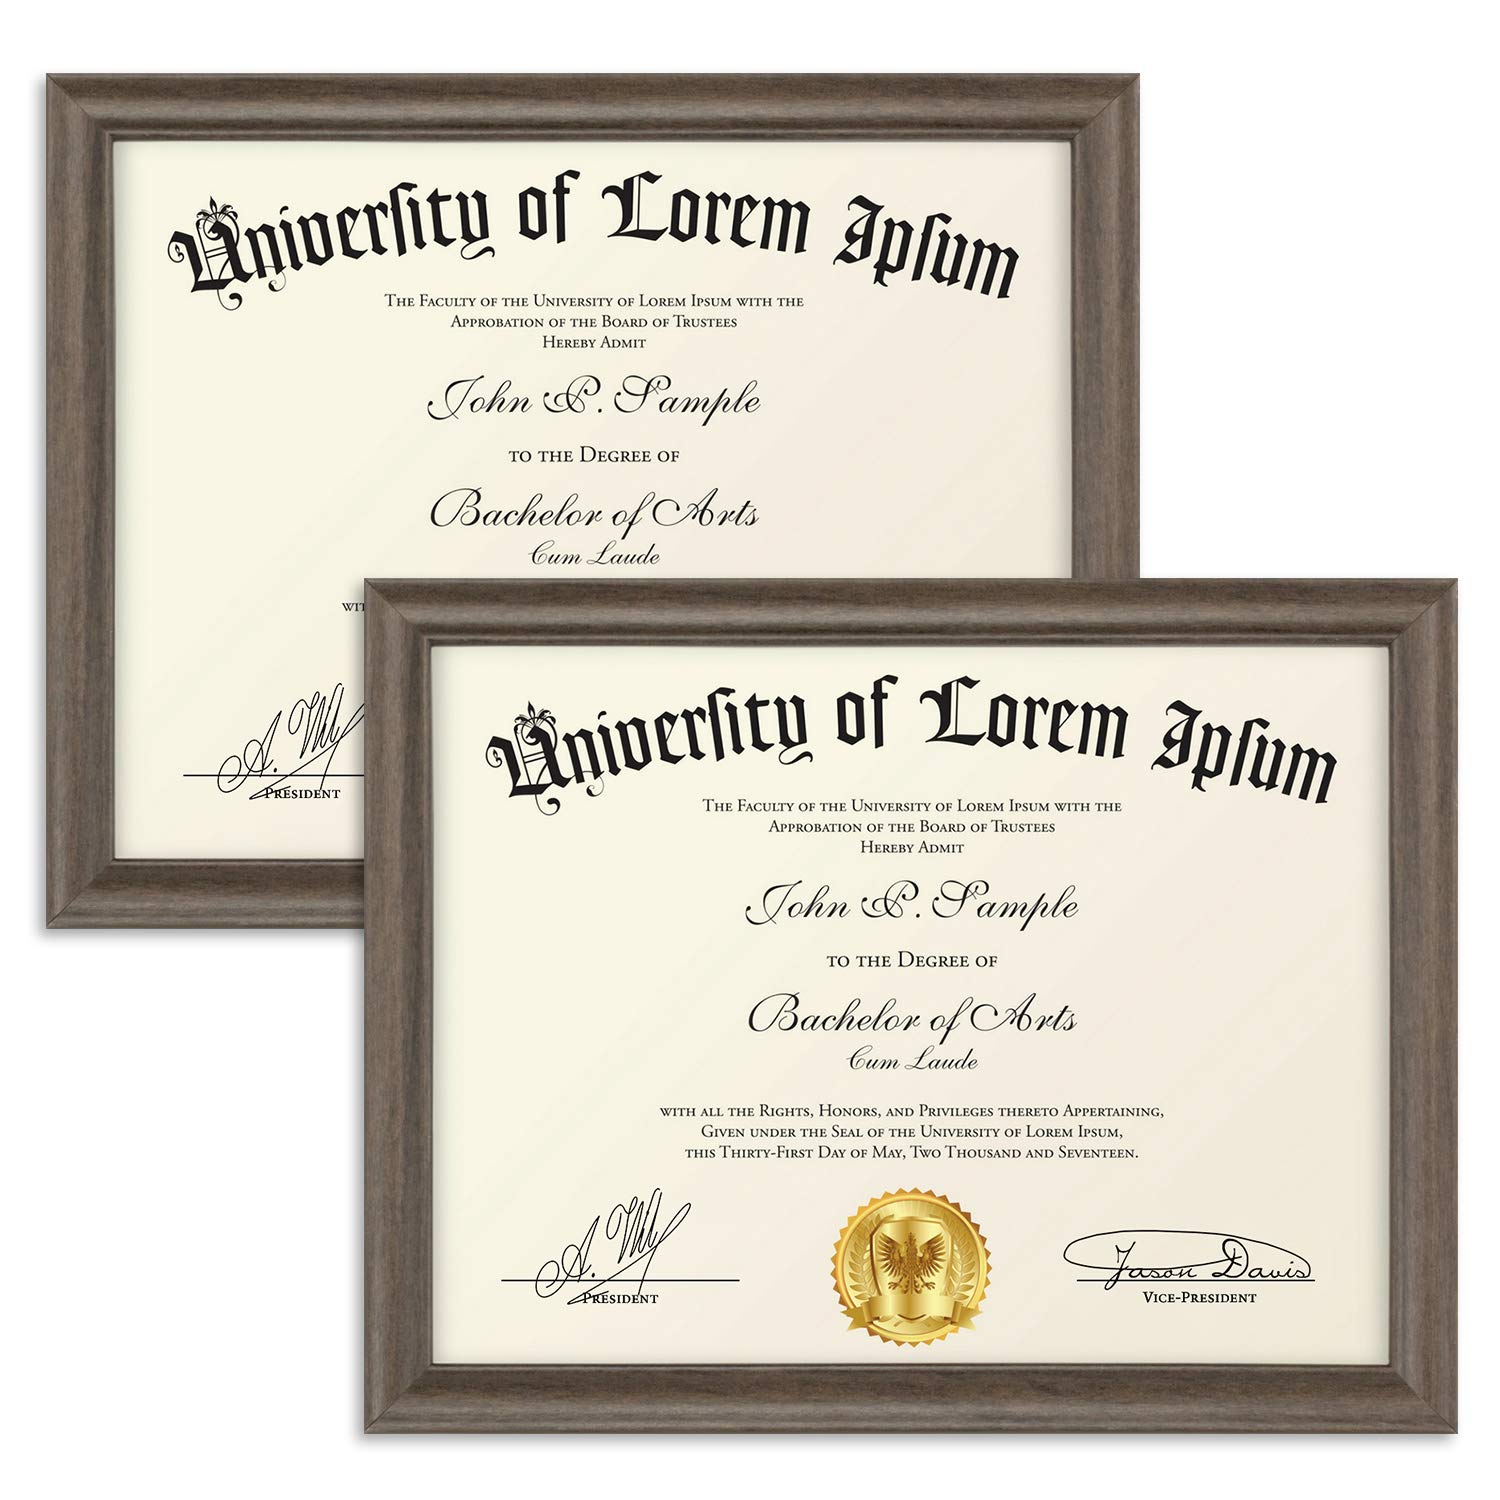 Icona Bay 8.5x11 Diploma Frame (2 Pack, Hickory Brown), Certificate Frame, Document Frame, Composite Wood Frame for Walls or Tables, Set of 2 Lakeland Collection by Icona Bay